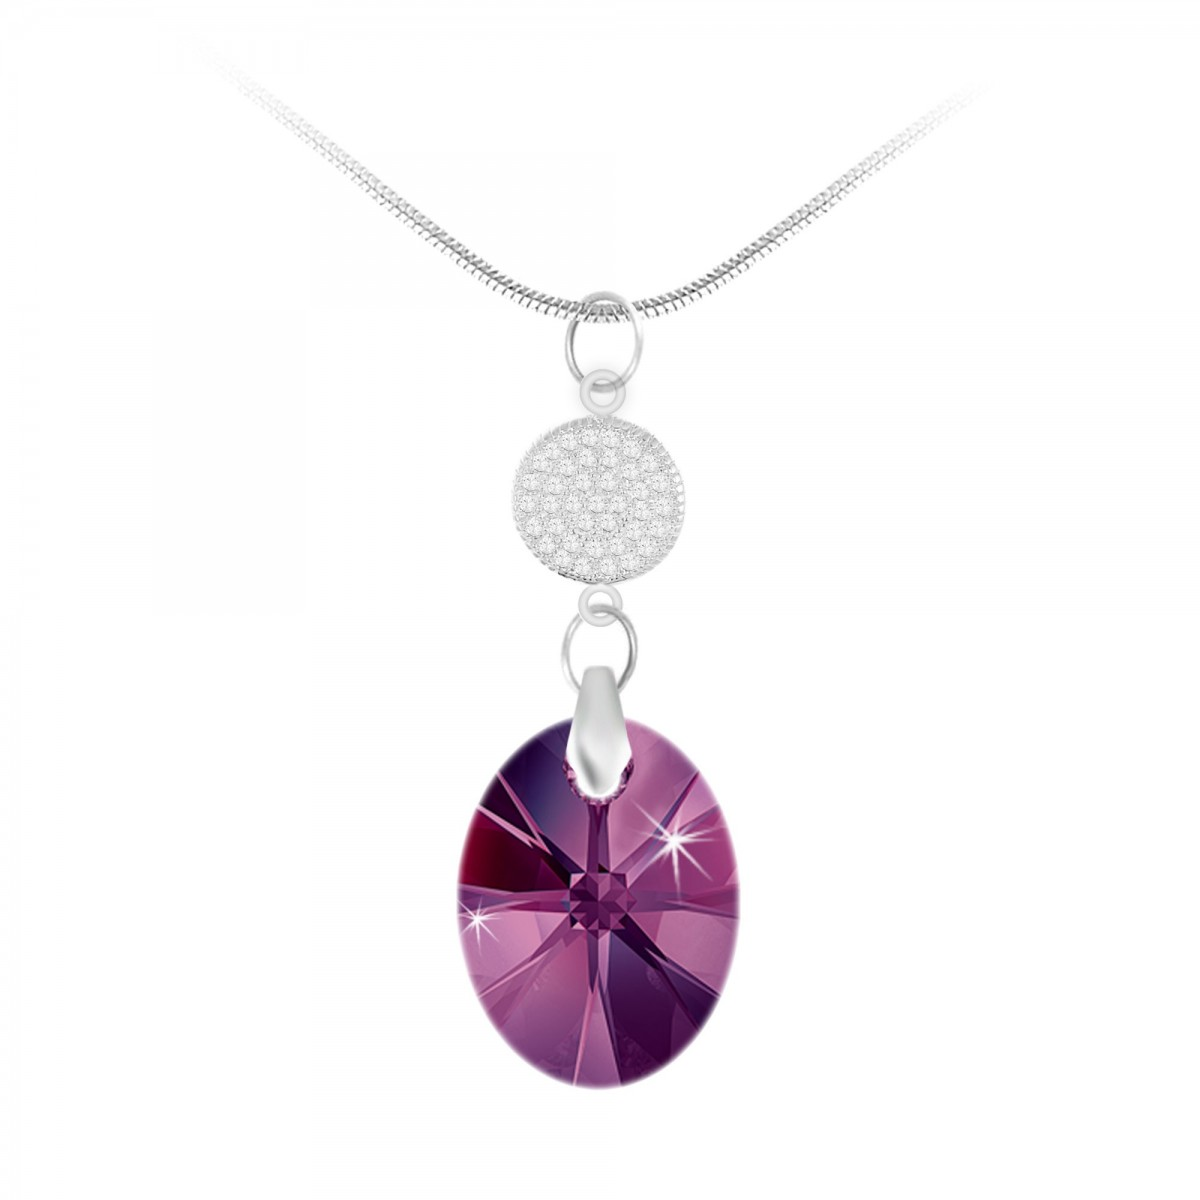 Collier argenté So Charm made with crystals from Swarovski amethyst